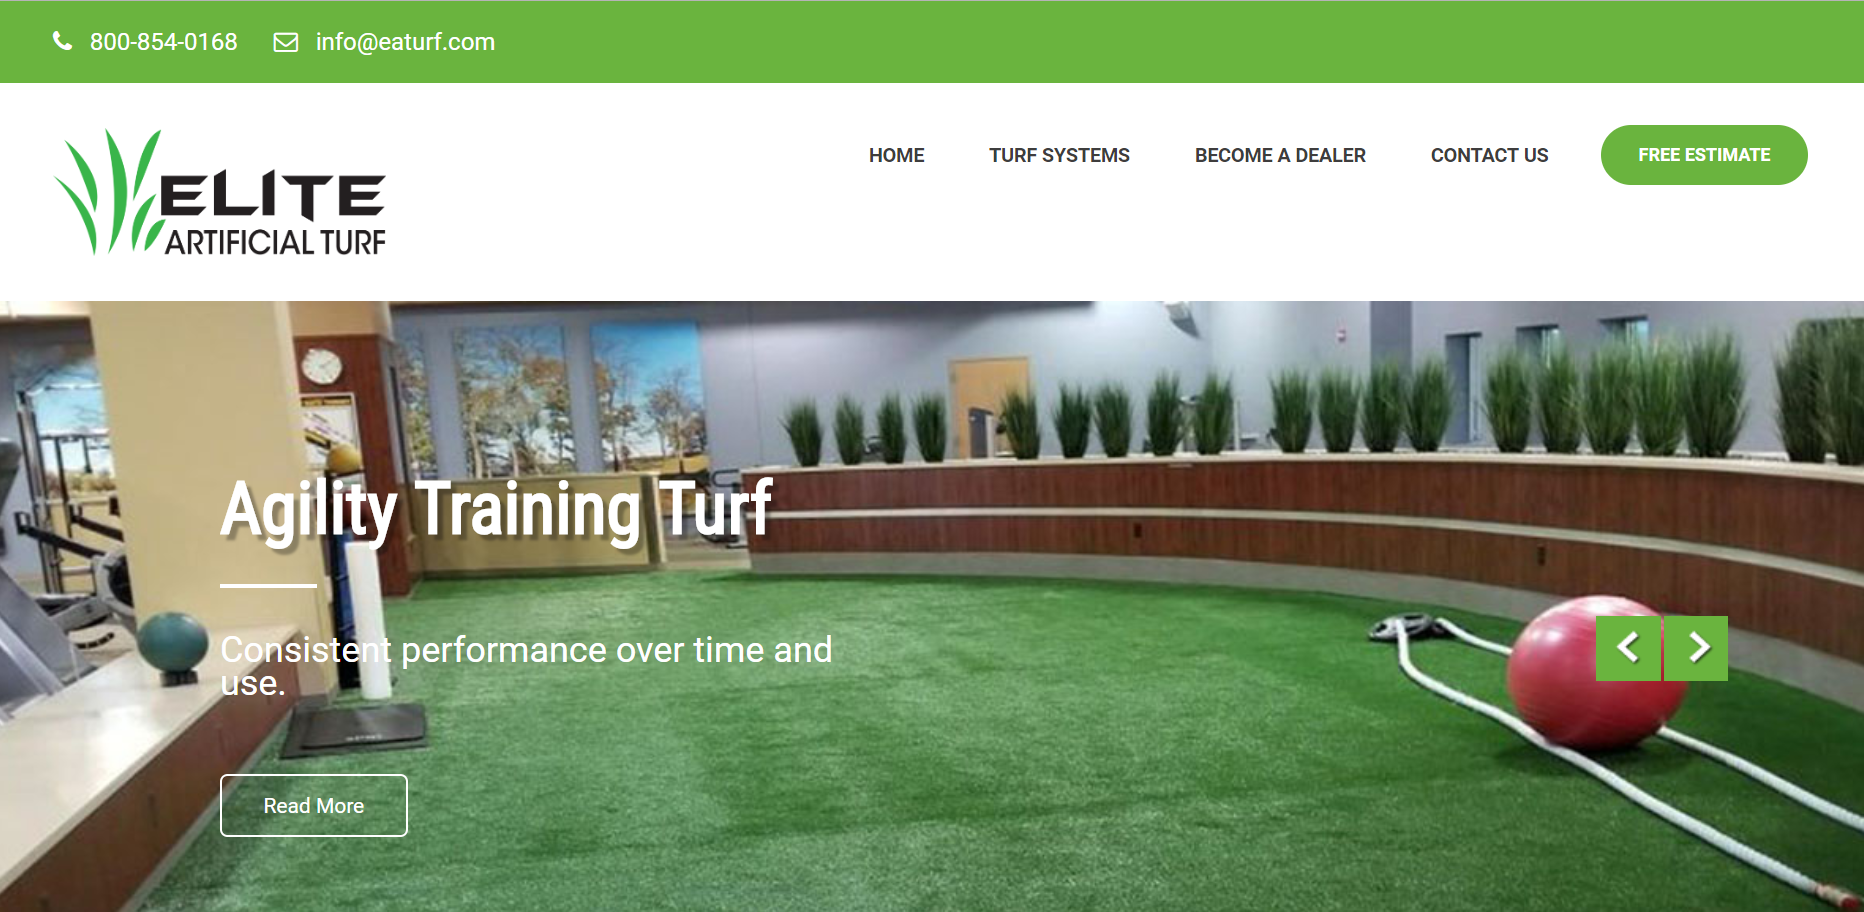 Elite Artificial Turf